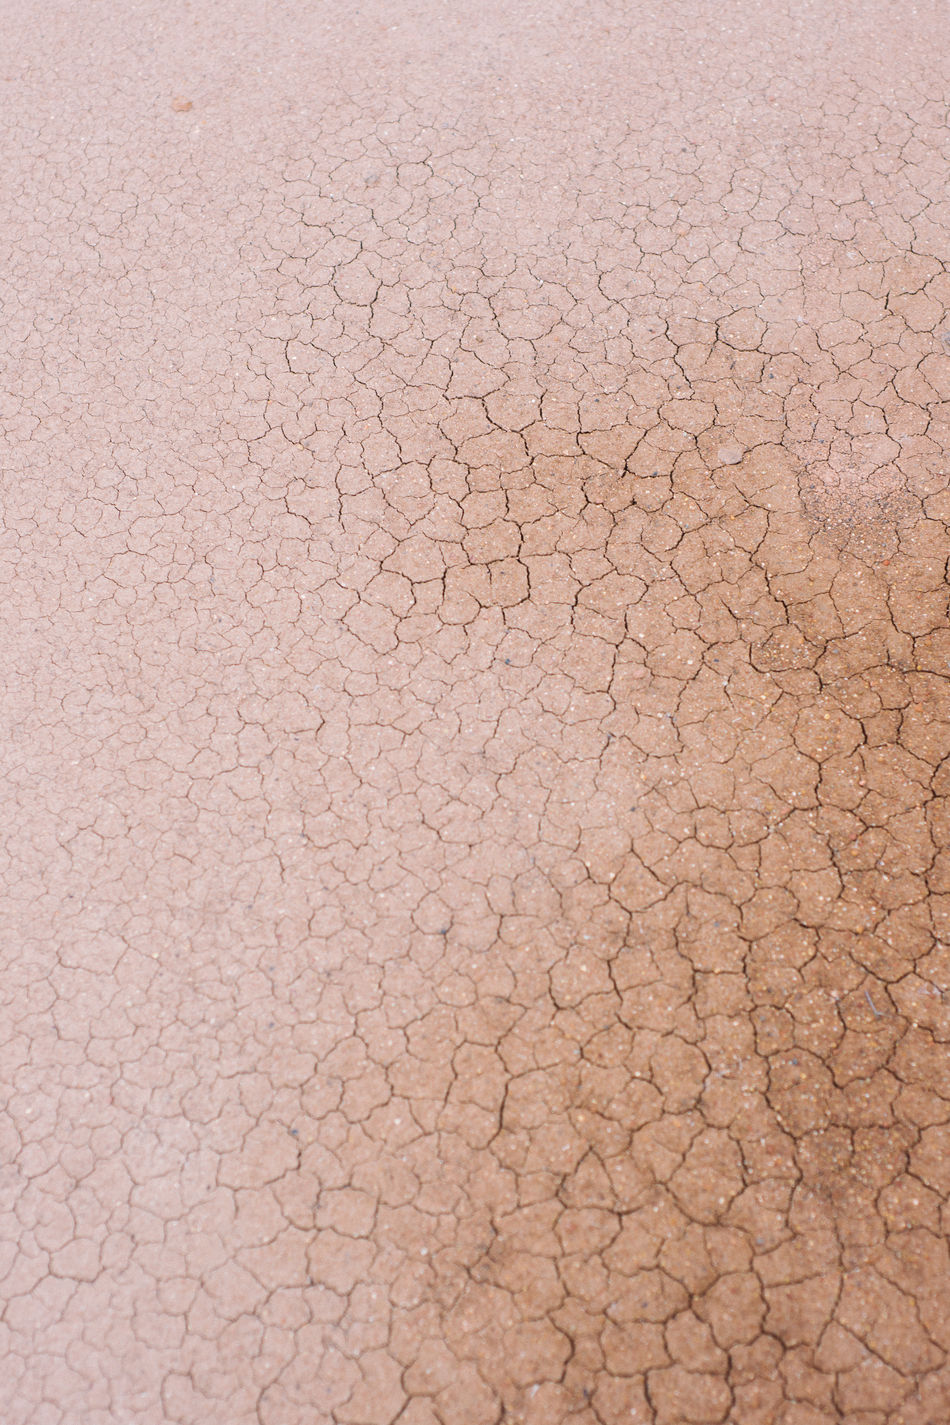 Clay Cracked Cracked Clay Cracked Earth Dry Floor Outdoors Texture Textured